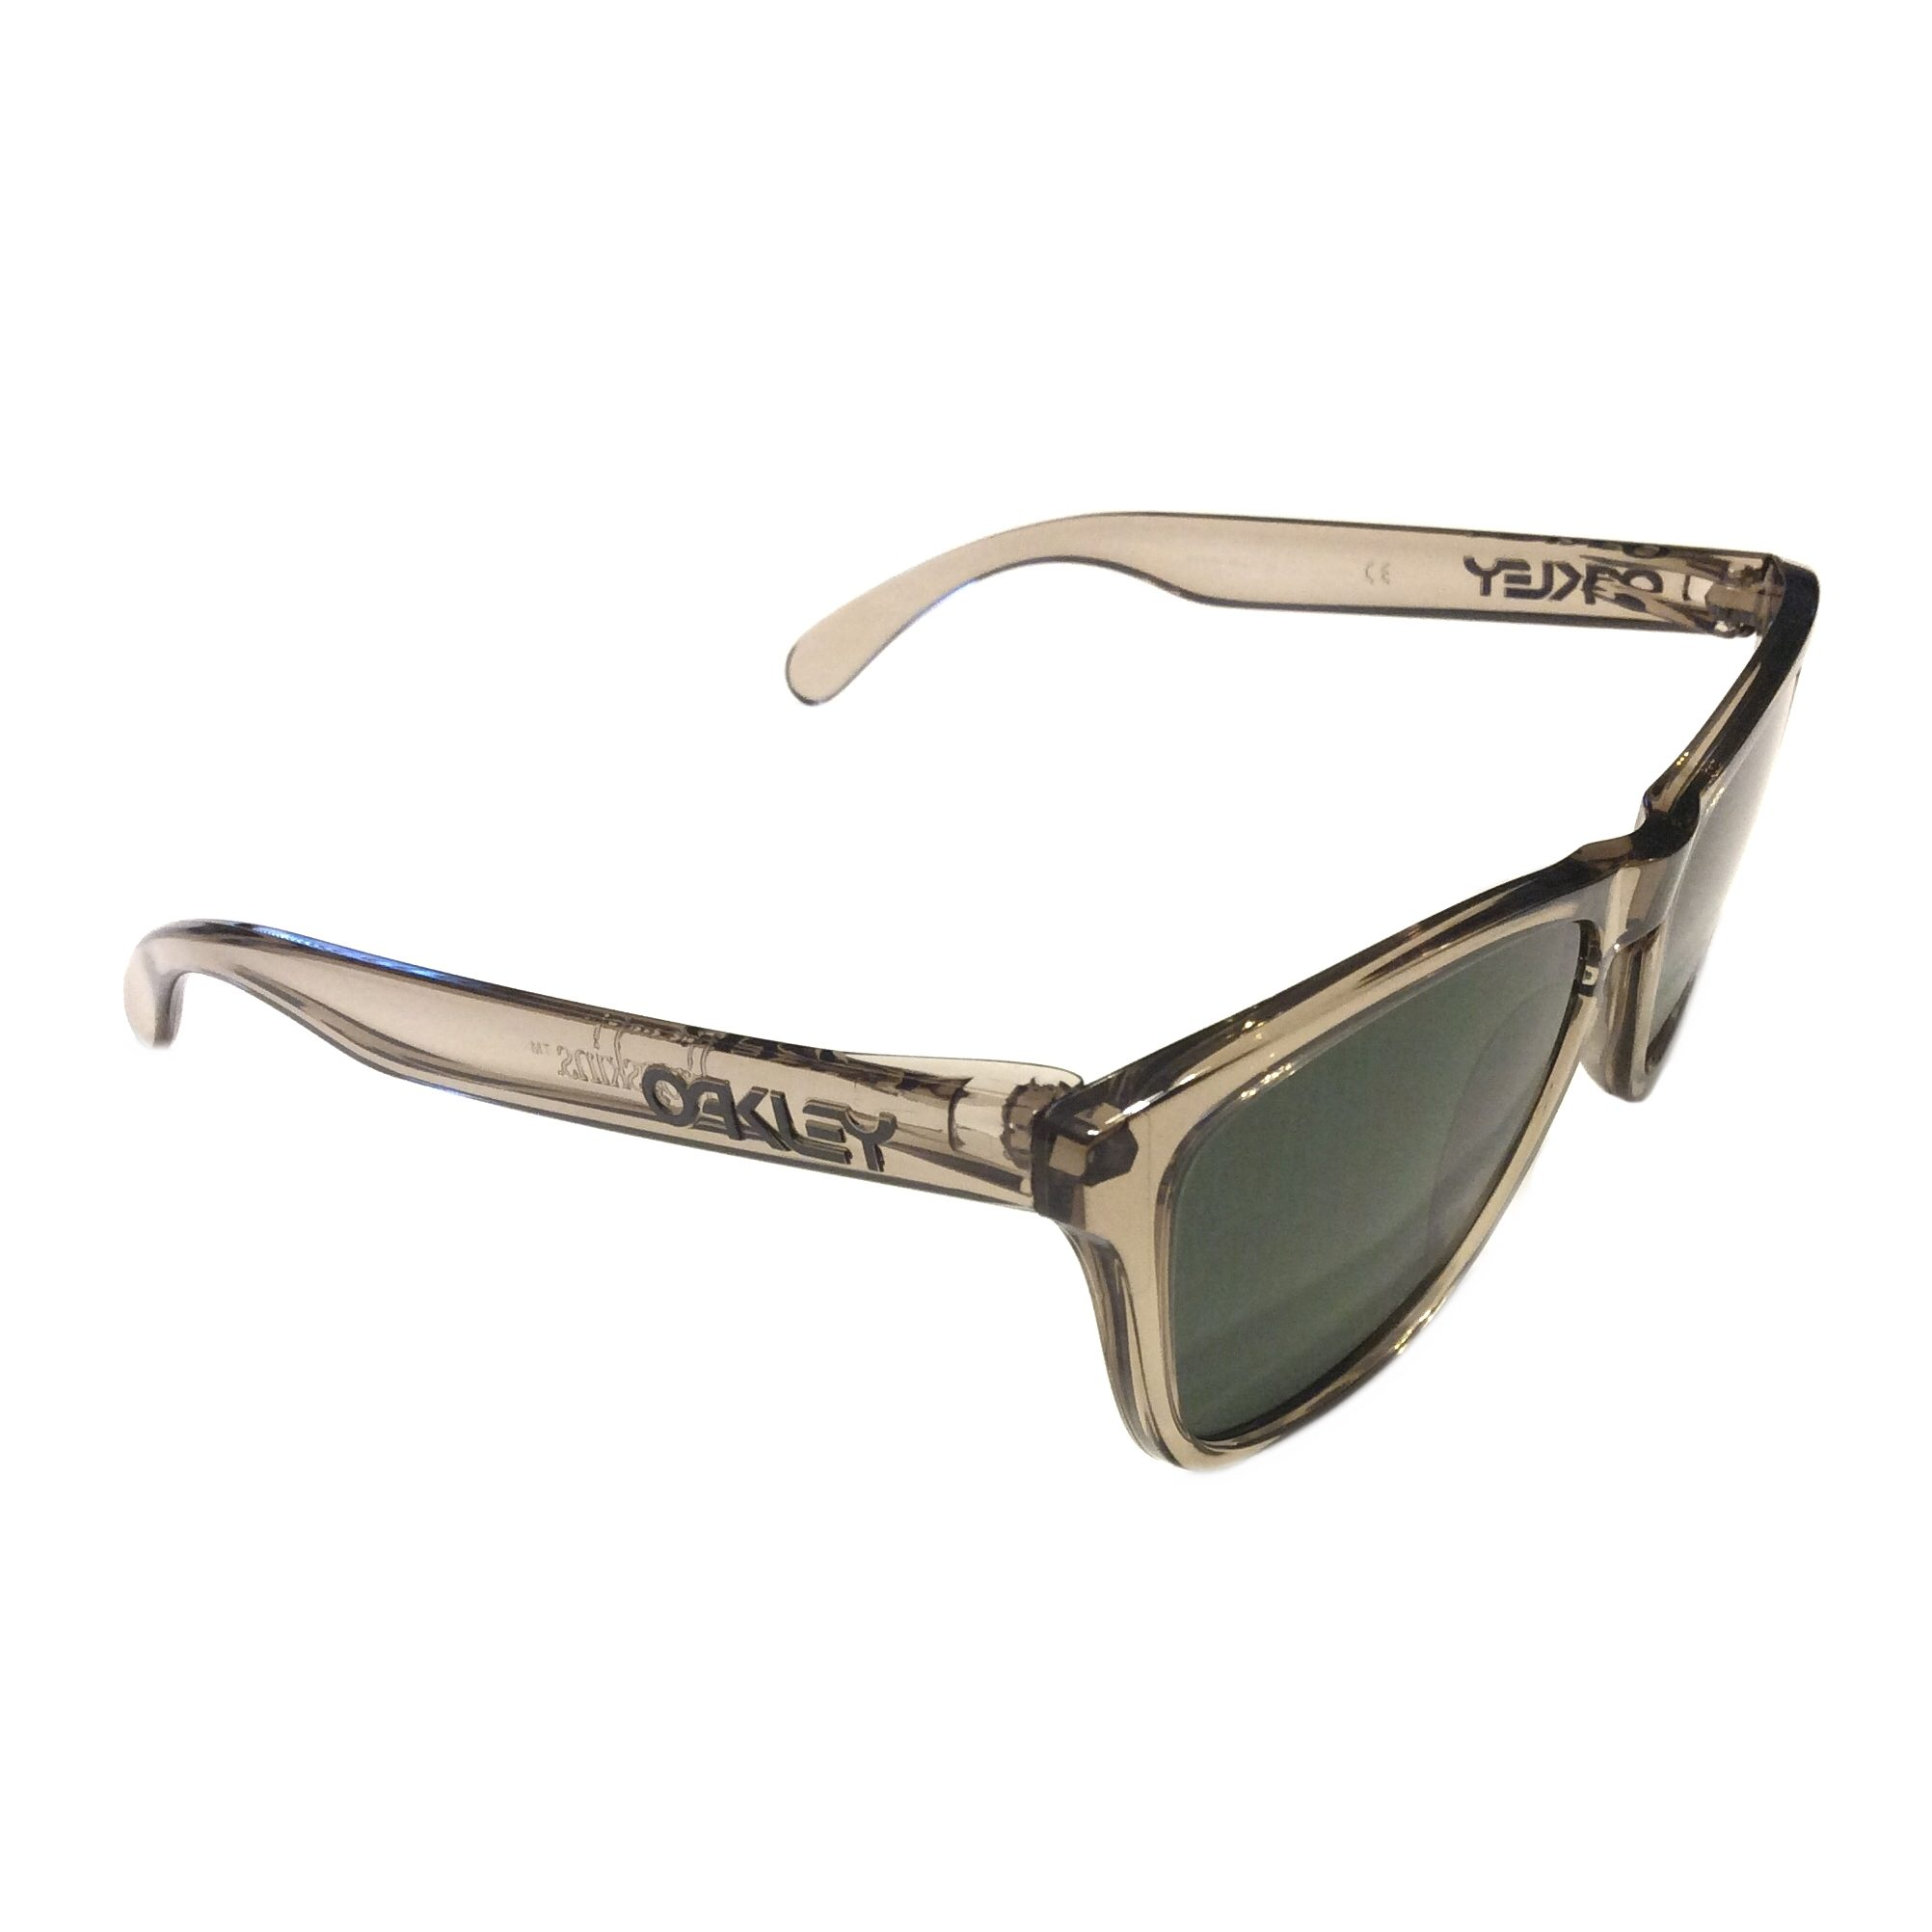 3fc90f5052 Oakley Frogskins Sunglasses - Sepia Ink Collection - Dark Grey - OO9013-03